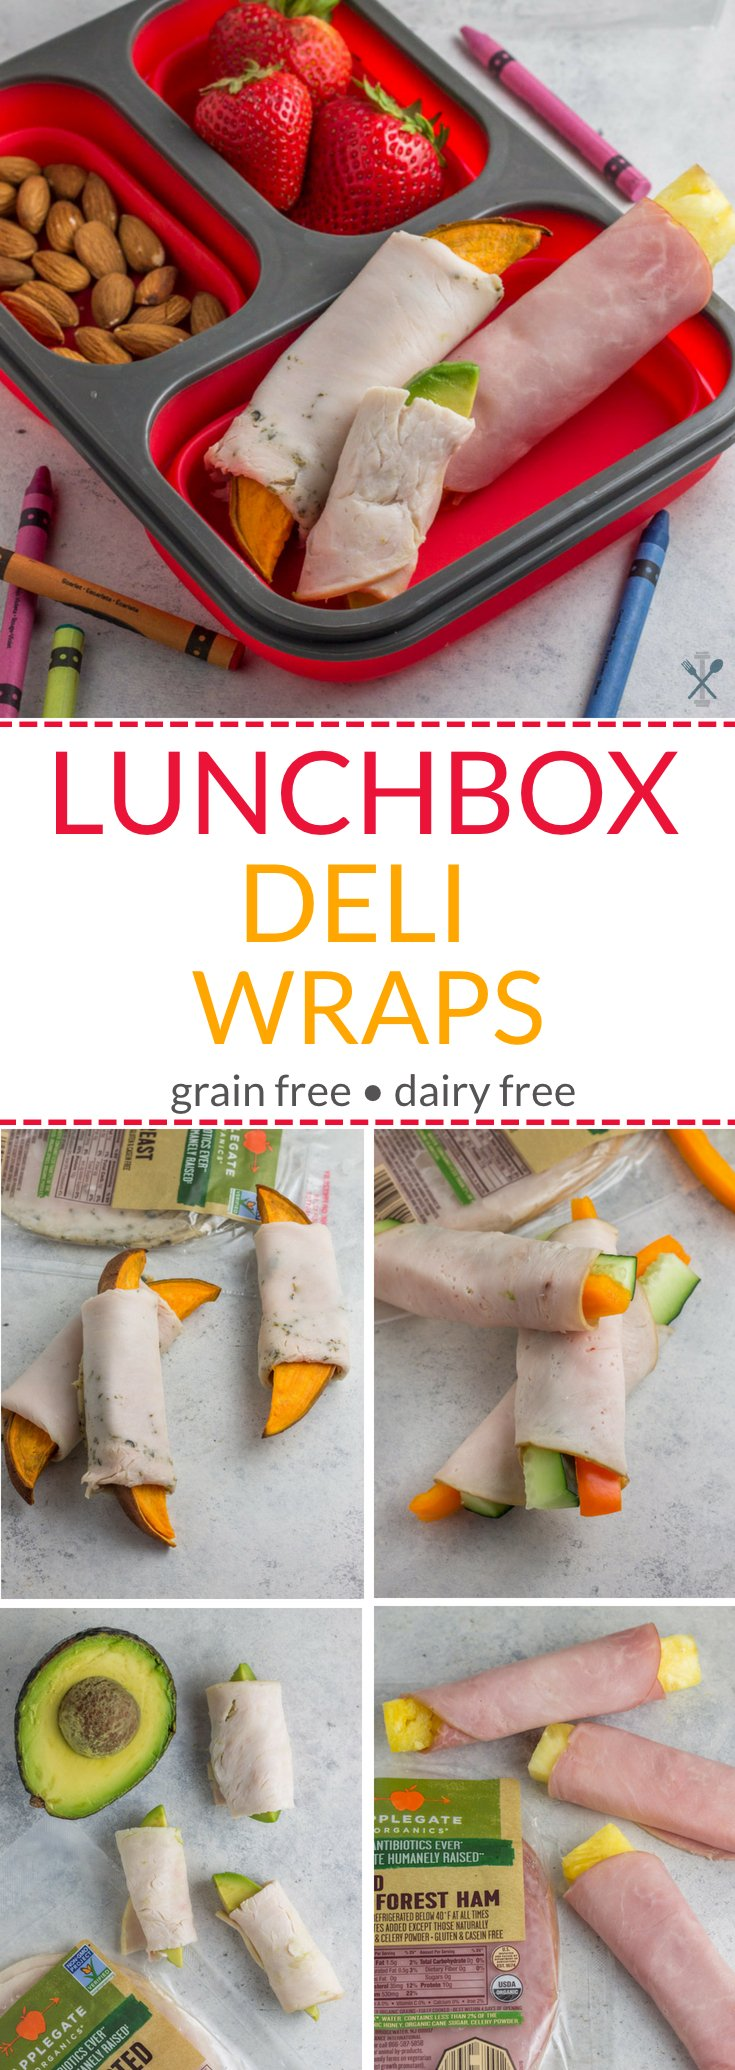 These lunchbox deli wraps are fun ideas to fit in protein, veggies, and healthy fats for back to school. Grain free, dairy free, paleo options.